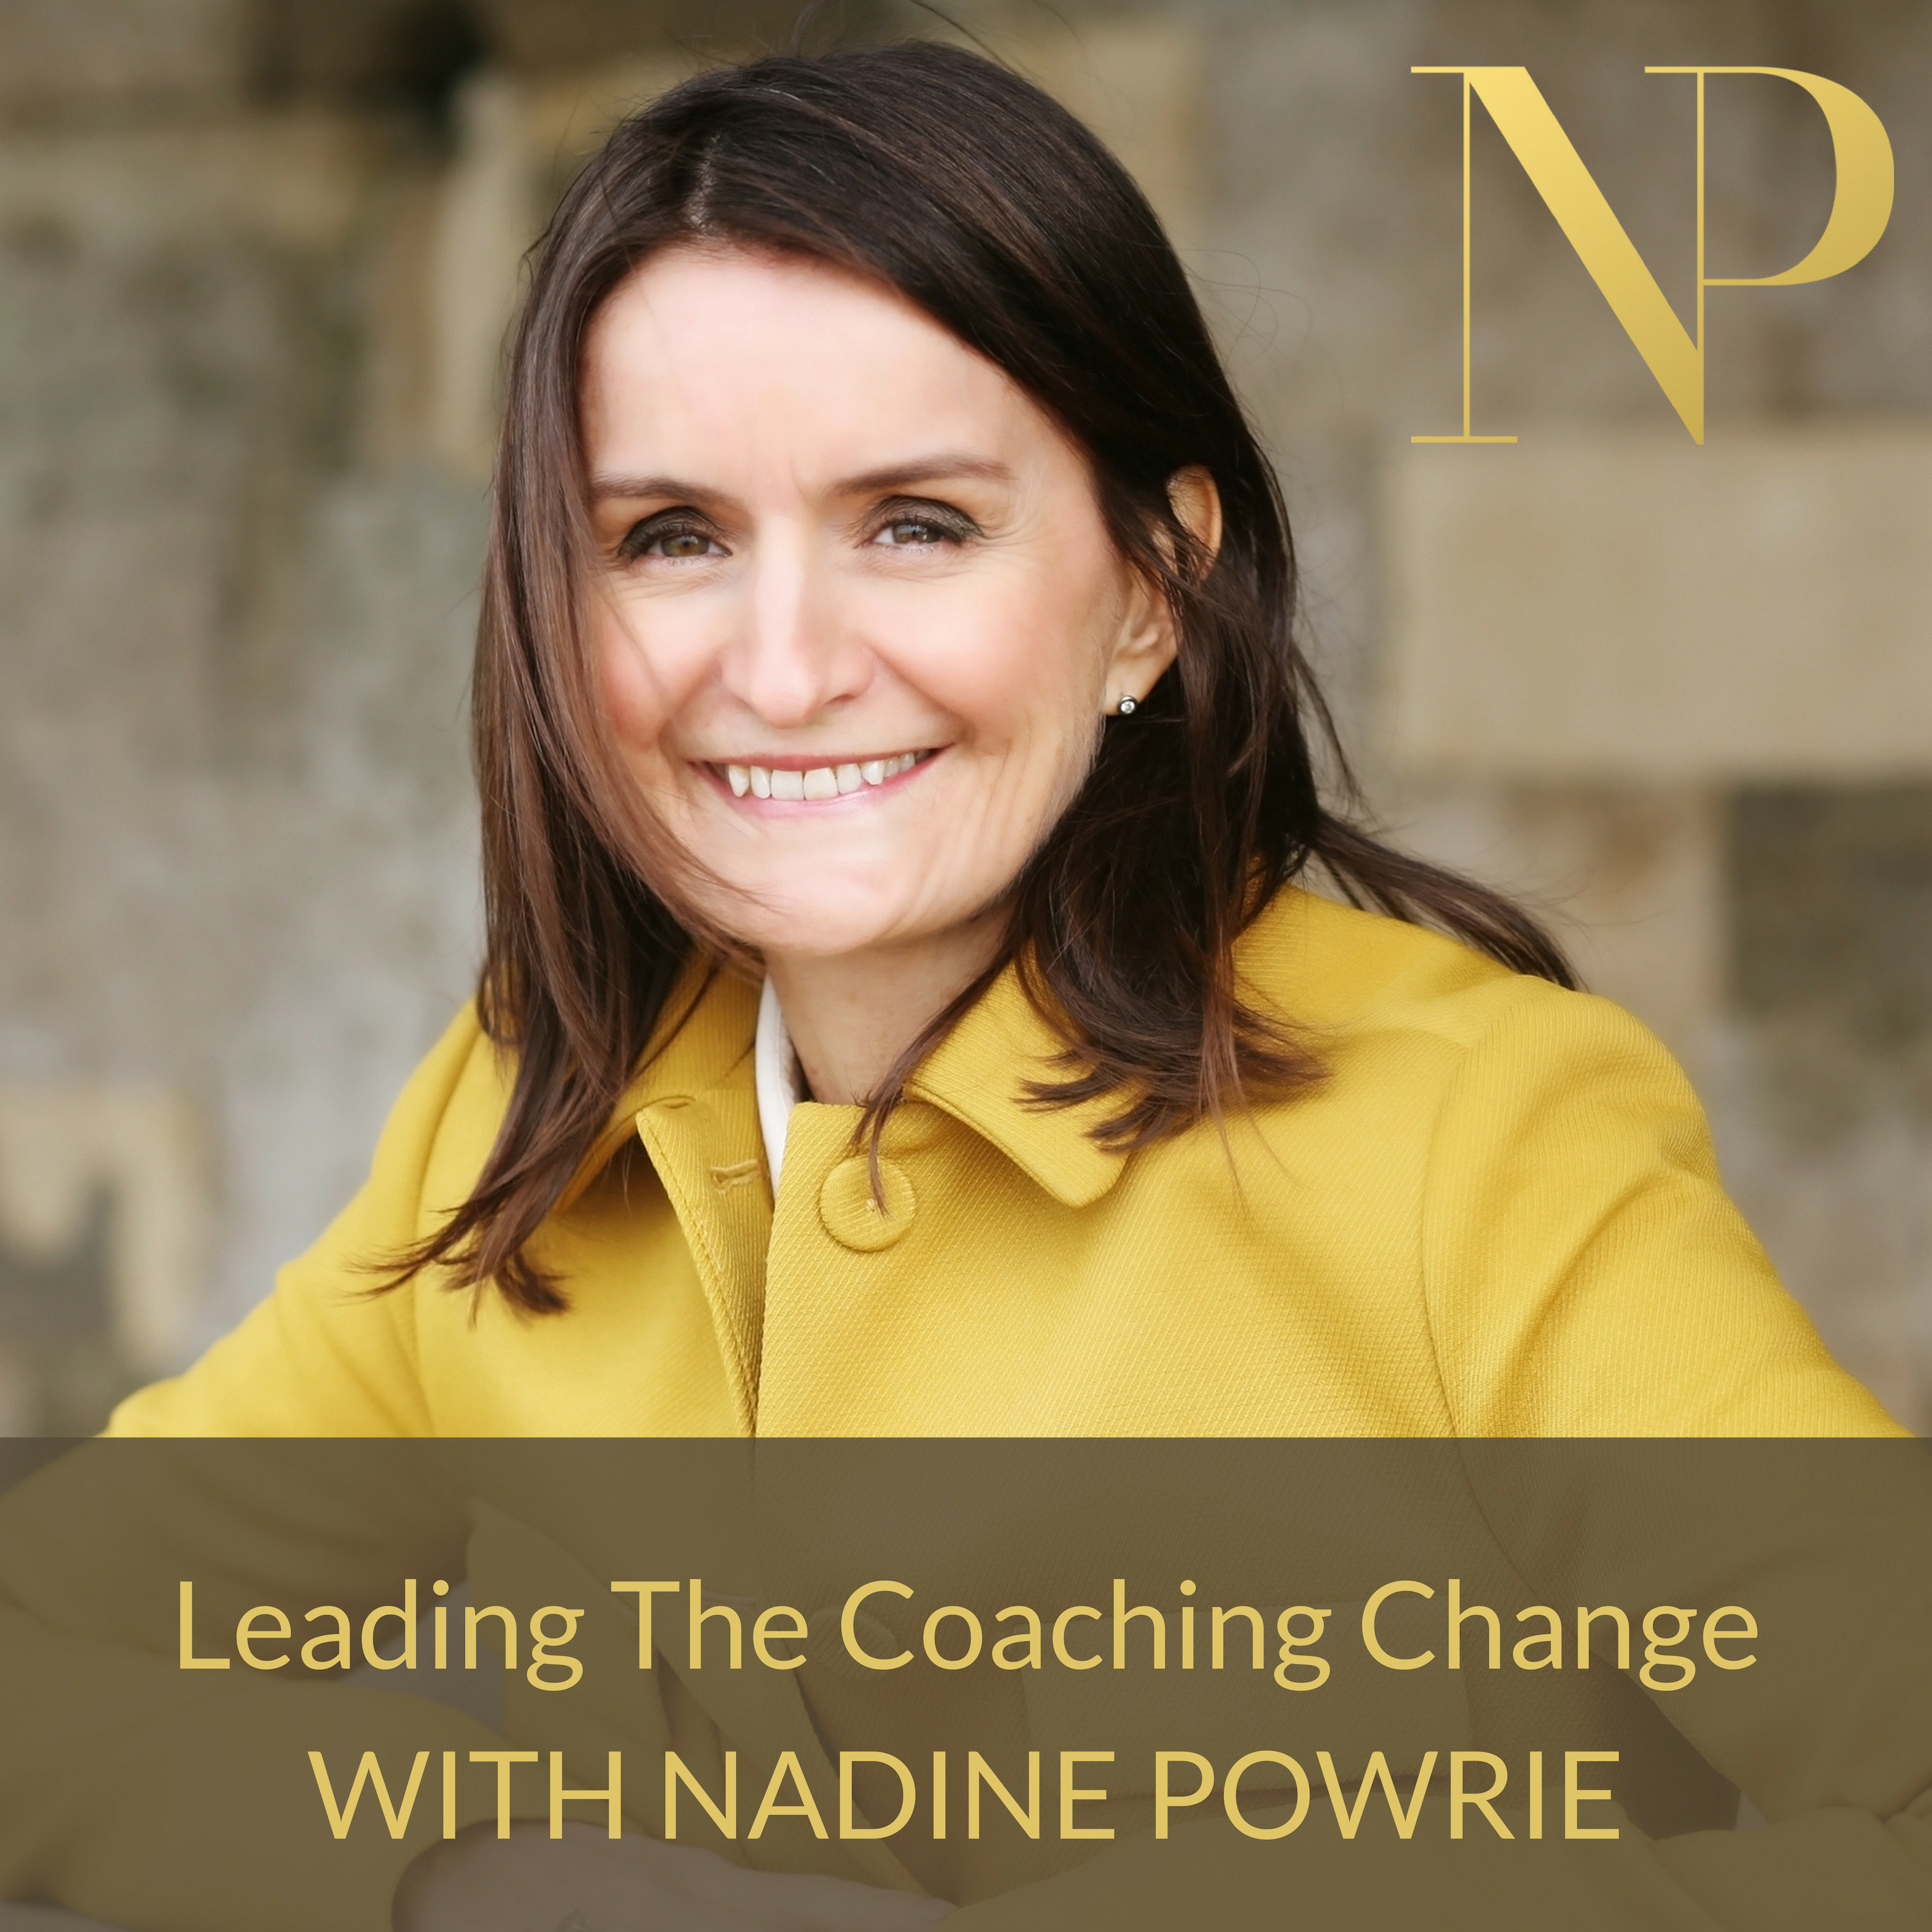 Leading The Coaching Change with Nadine Powrie